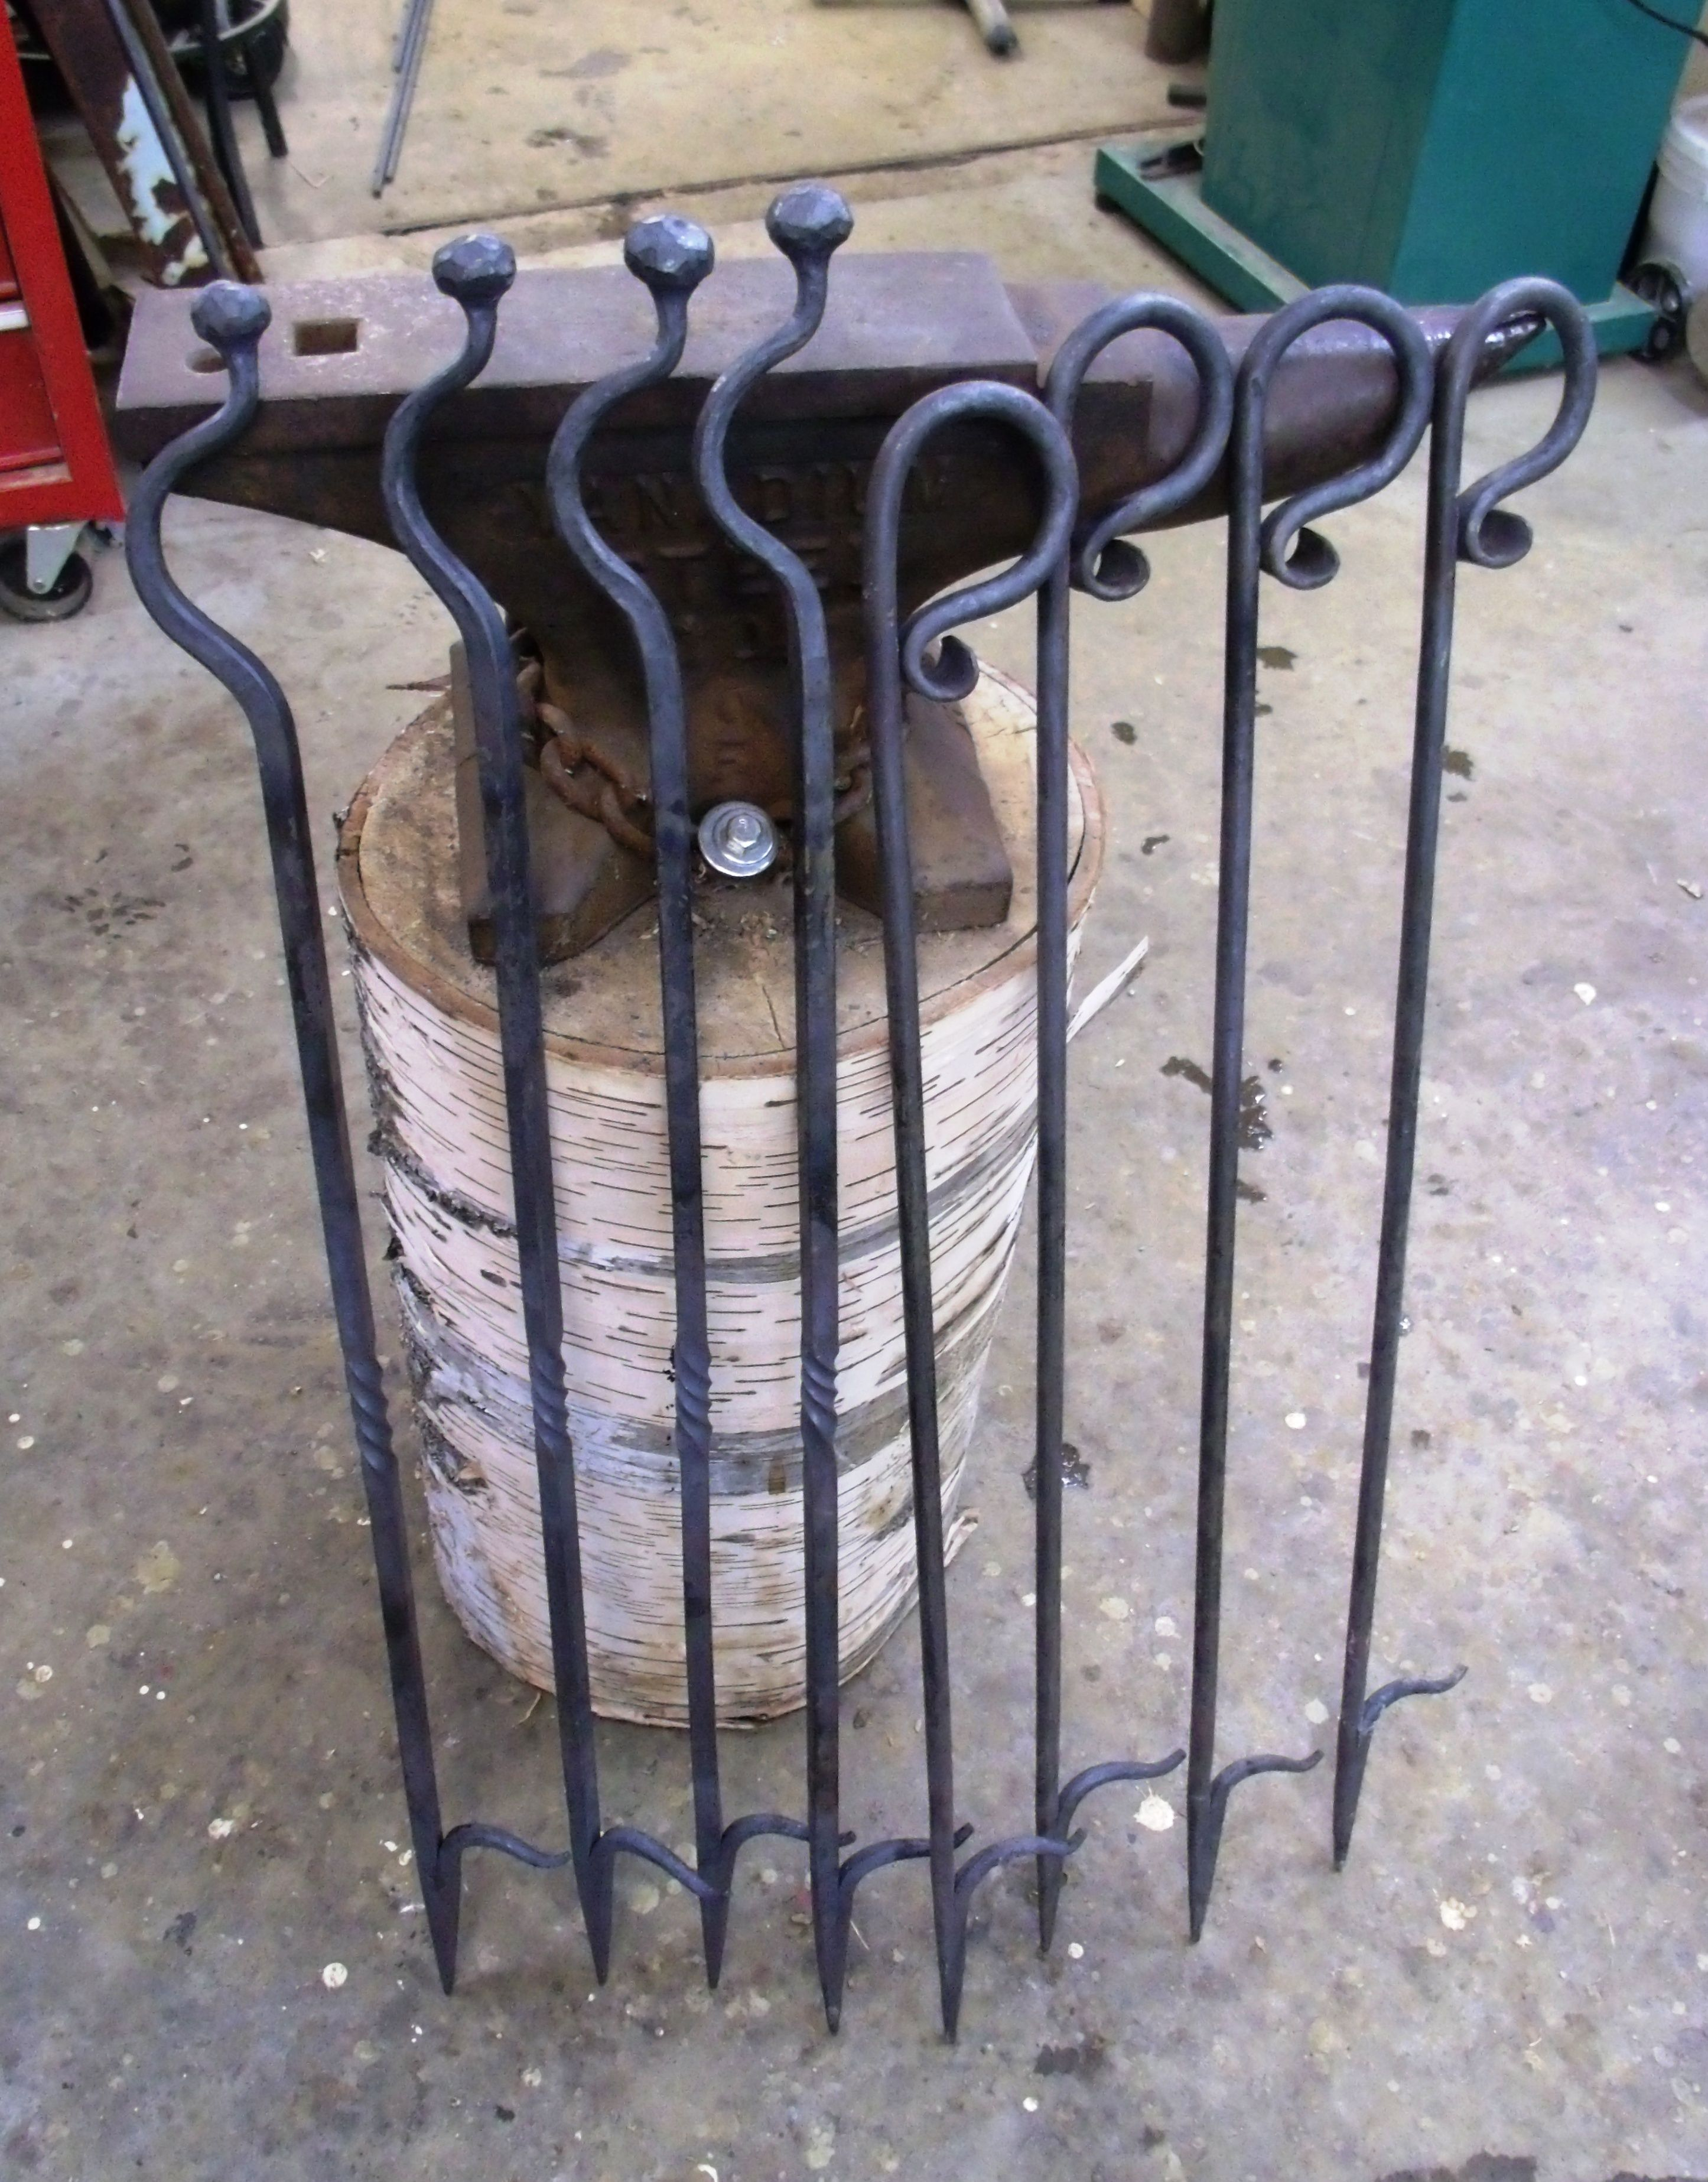 blacksmith projects. fireplace pokers made in our shop this week. blacksmith projects